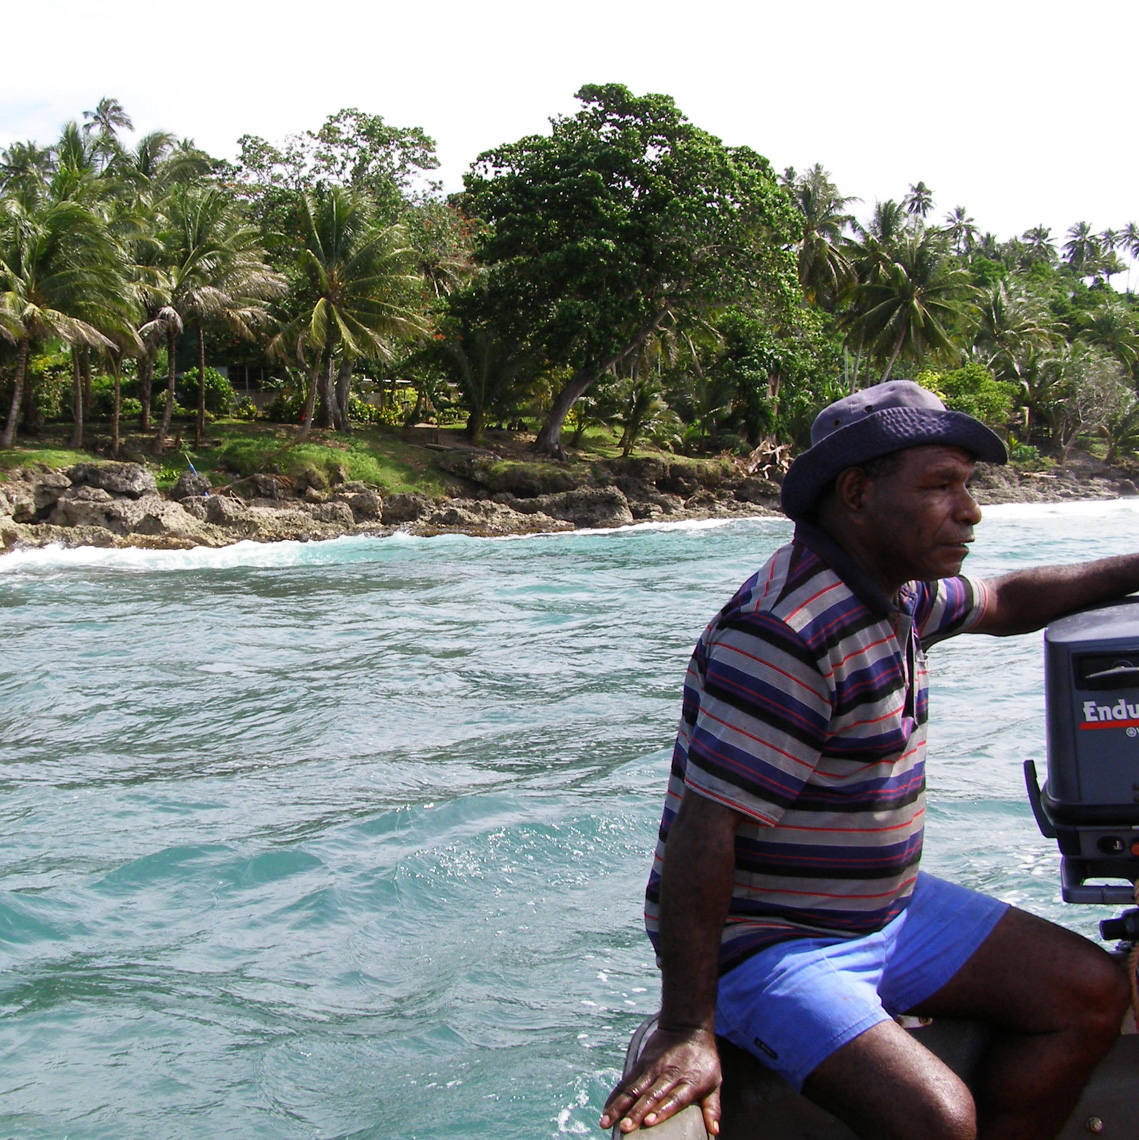 My good friend and long-time field collector Jerry Kudud idling just off the rocks in front of my old house, hidden in the trees, on Wewak Point, East Sepik Province, Papua New Guinea, circa 2005.